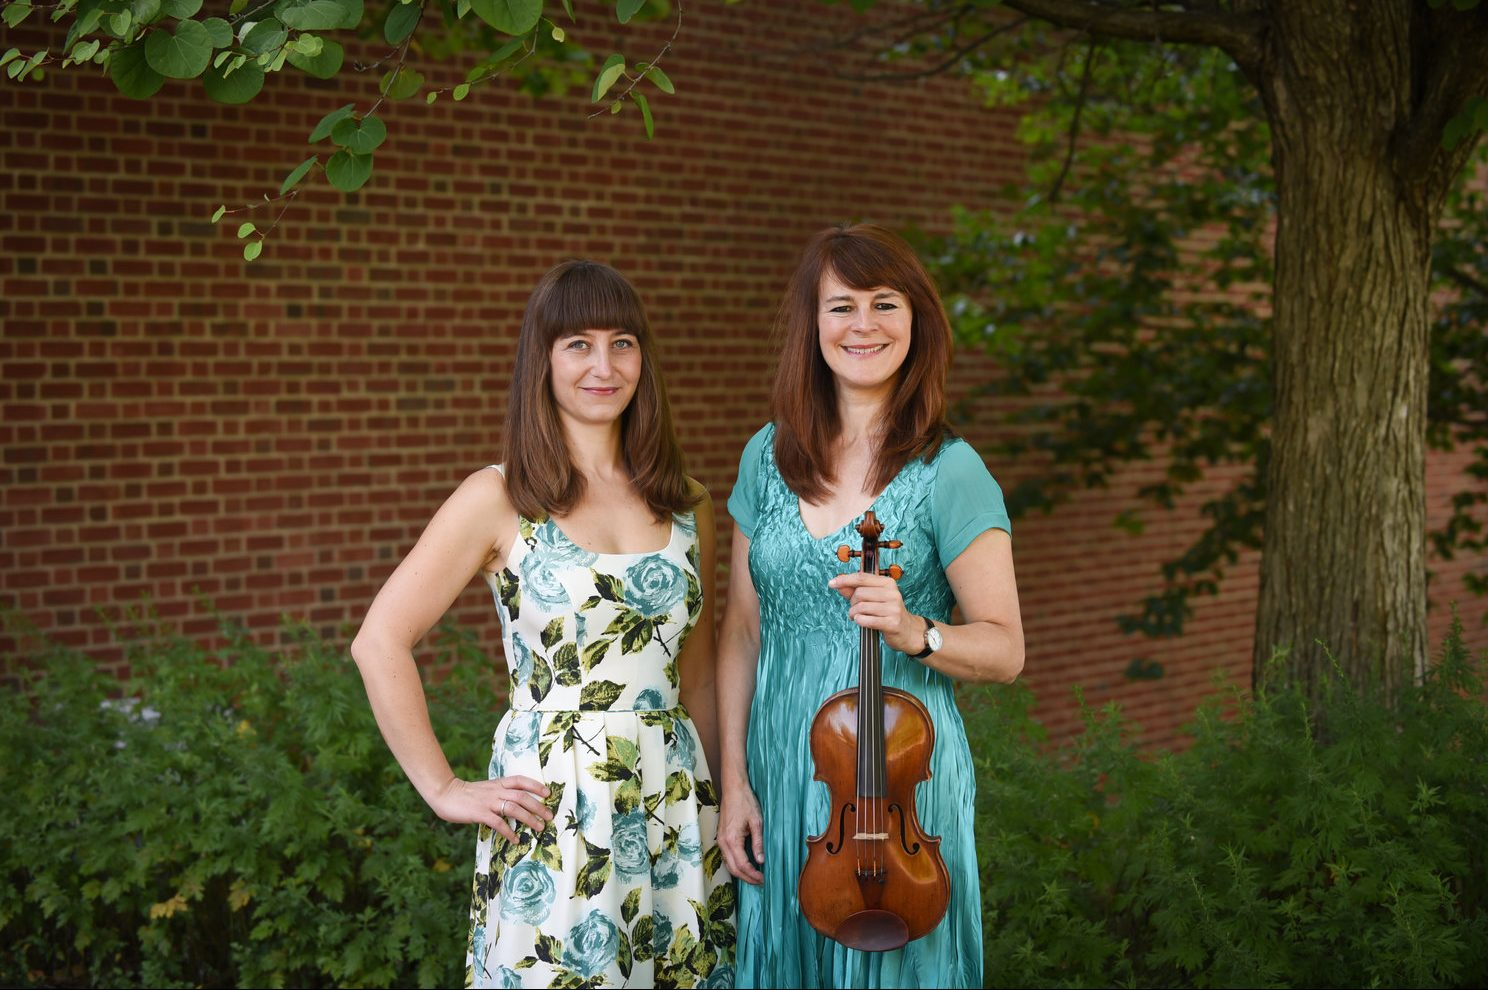 Fortepianist Sezi Seskir and violinist Lucy Russell are equal partners in Beethoven sonatas. Photo by Gordon Wenzel)